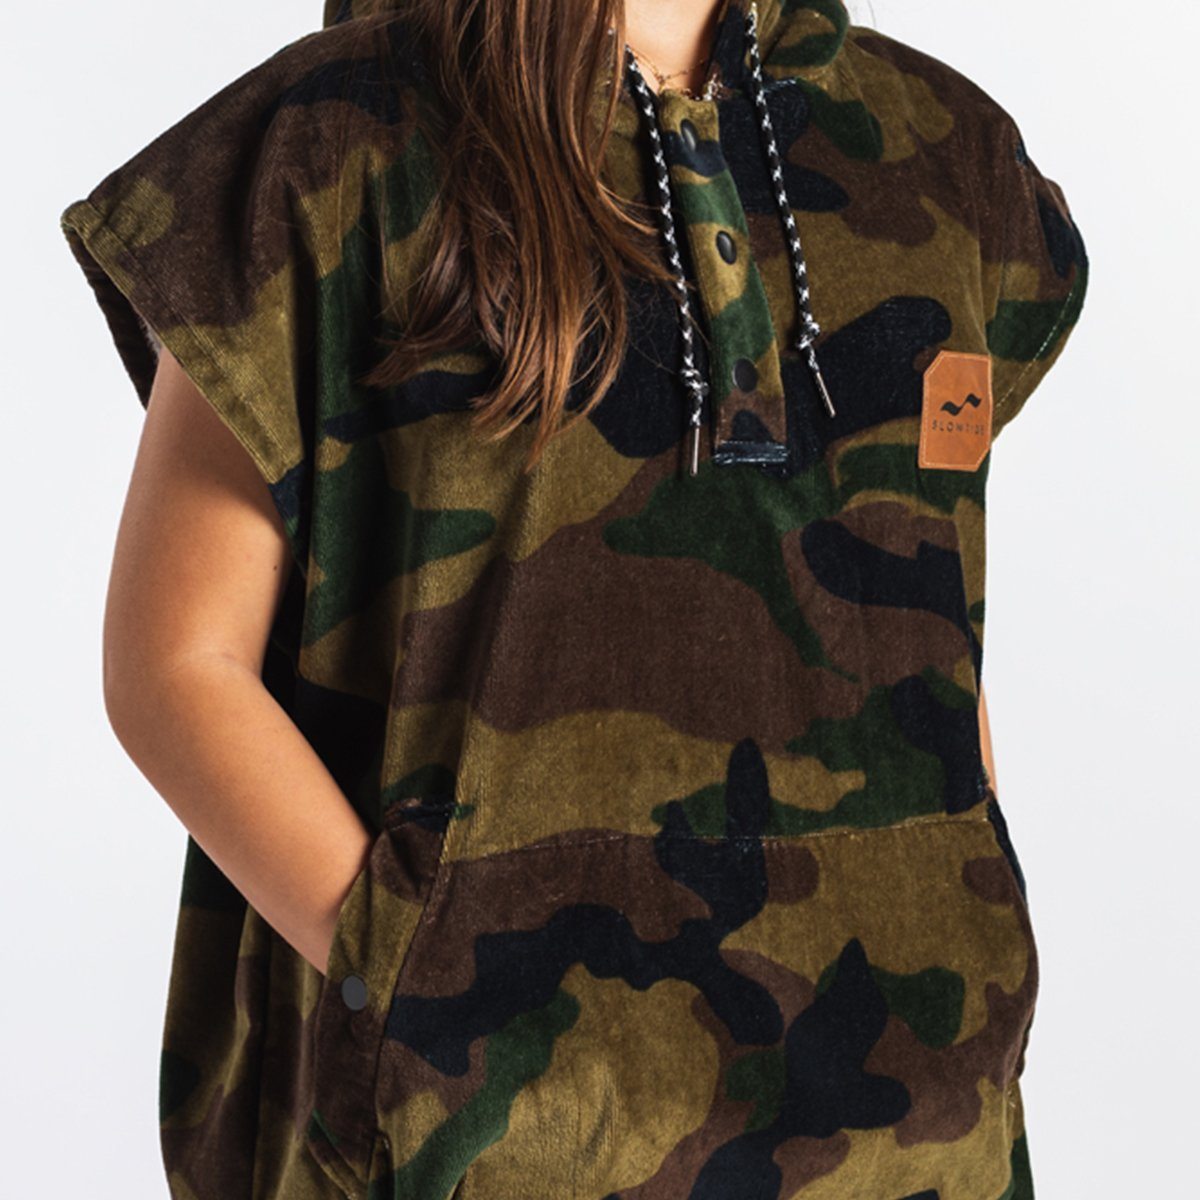 REGIME CHANGING PONCHO S/M